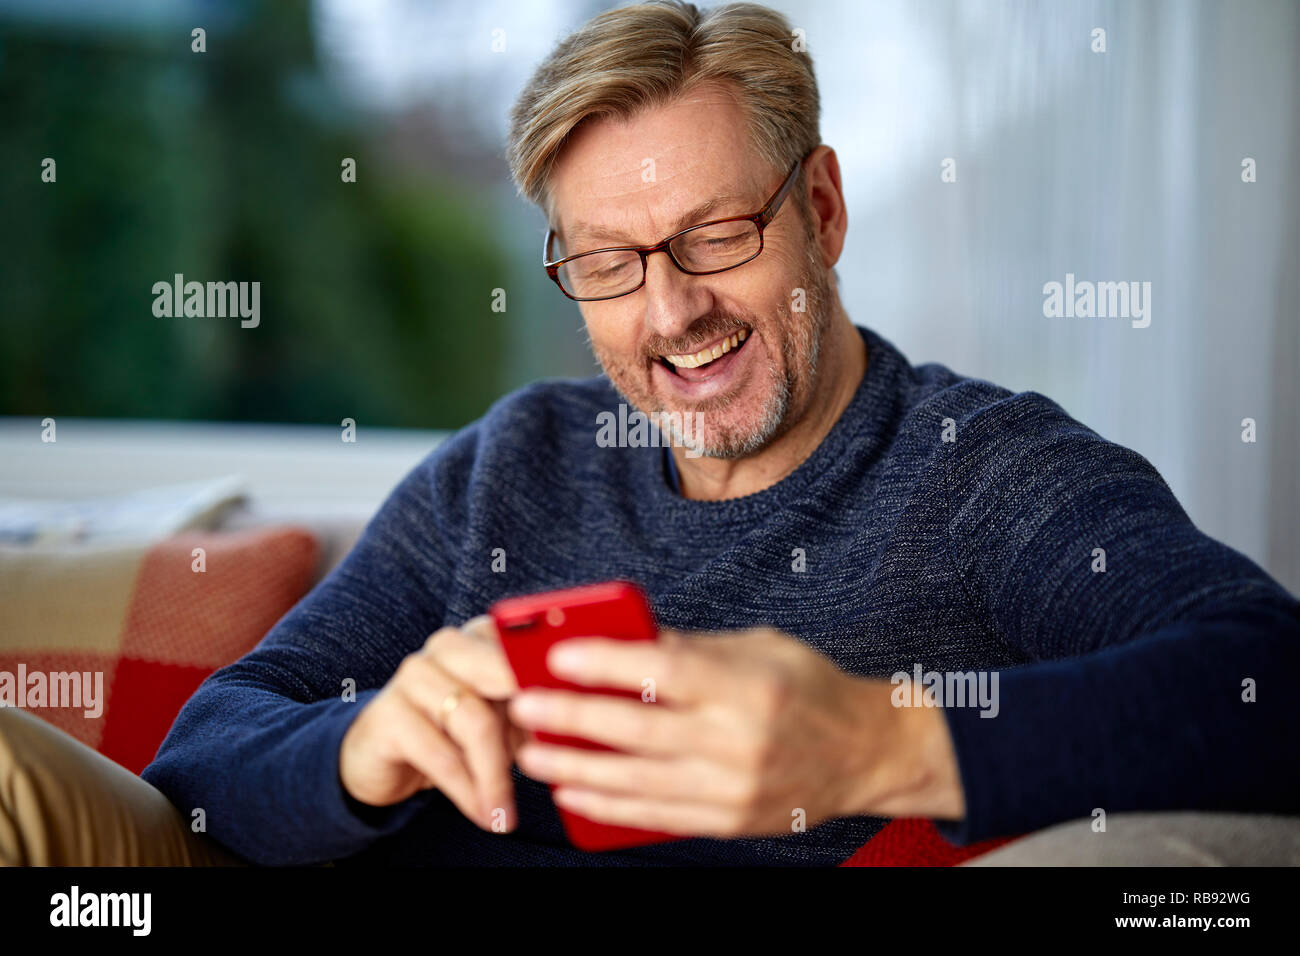 Man relaxing looking through his phone - Stock Image